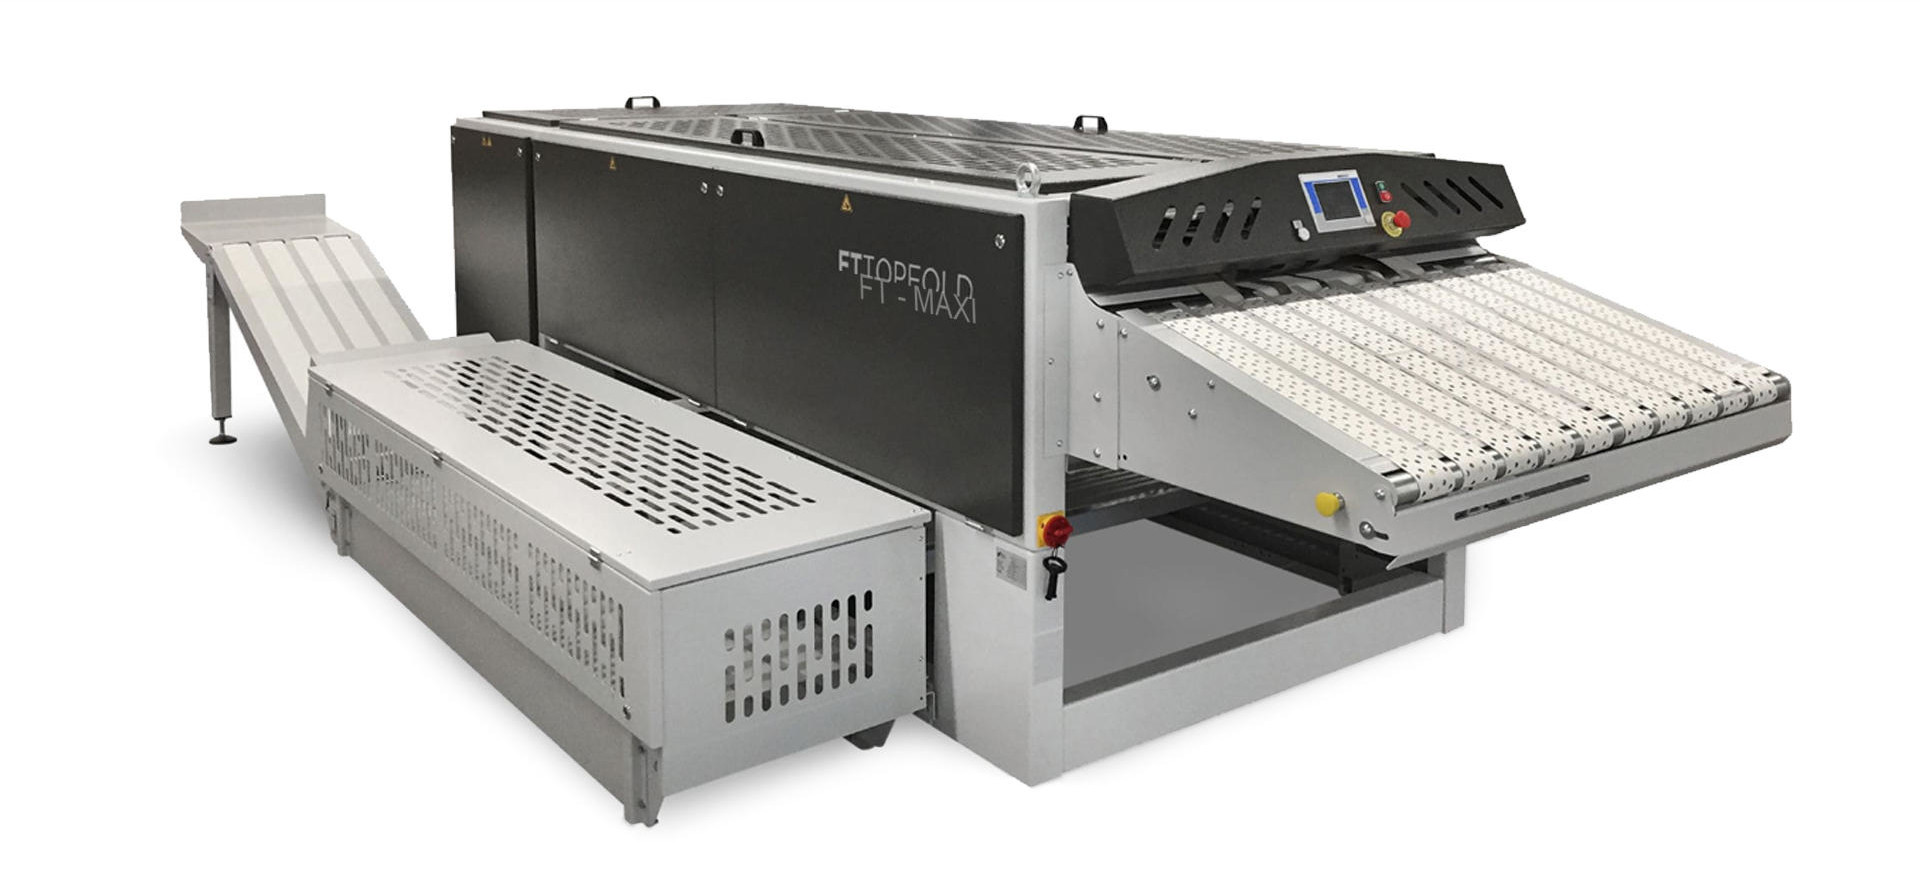 FT-MAXI automatic machine